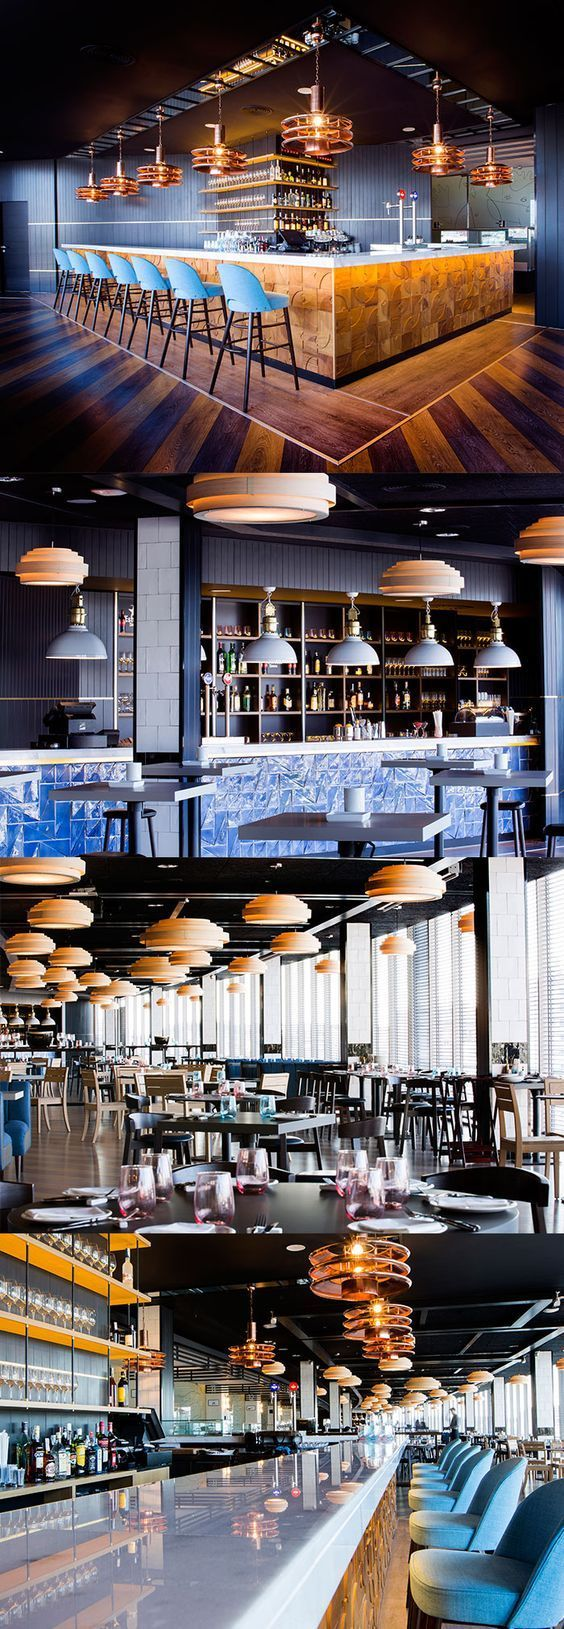 Bar Design Bar Design Restaurant Cafe Bar Design Bar Interior Design